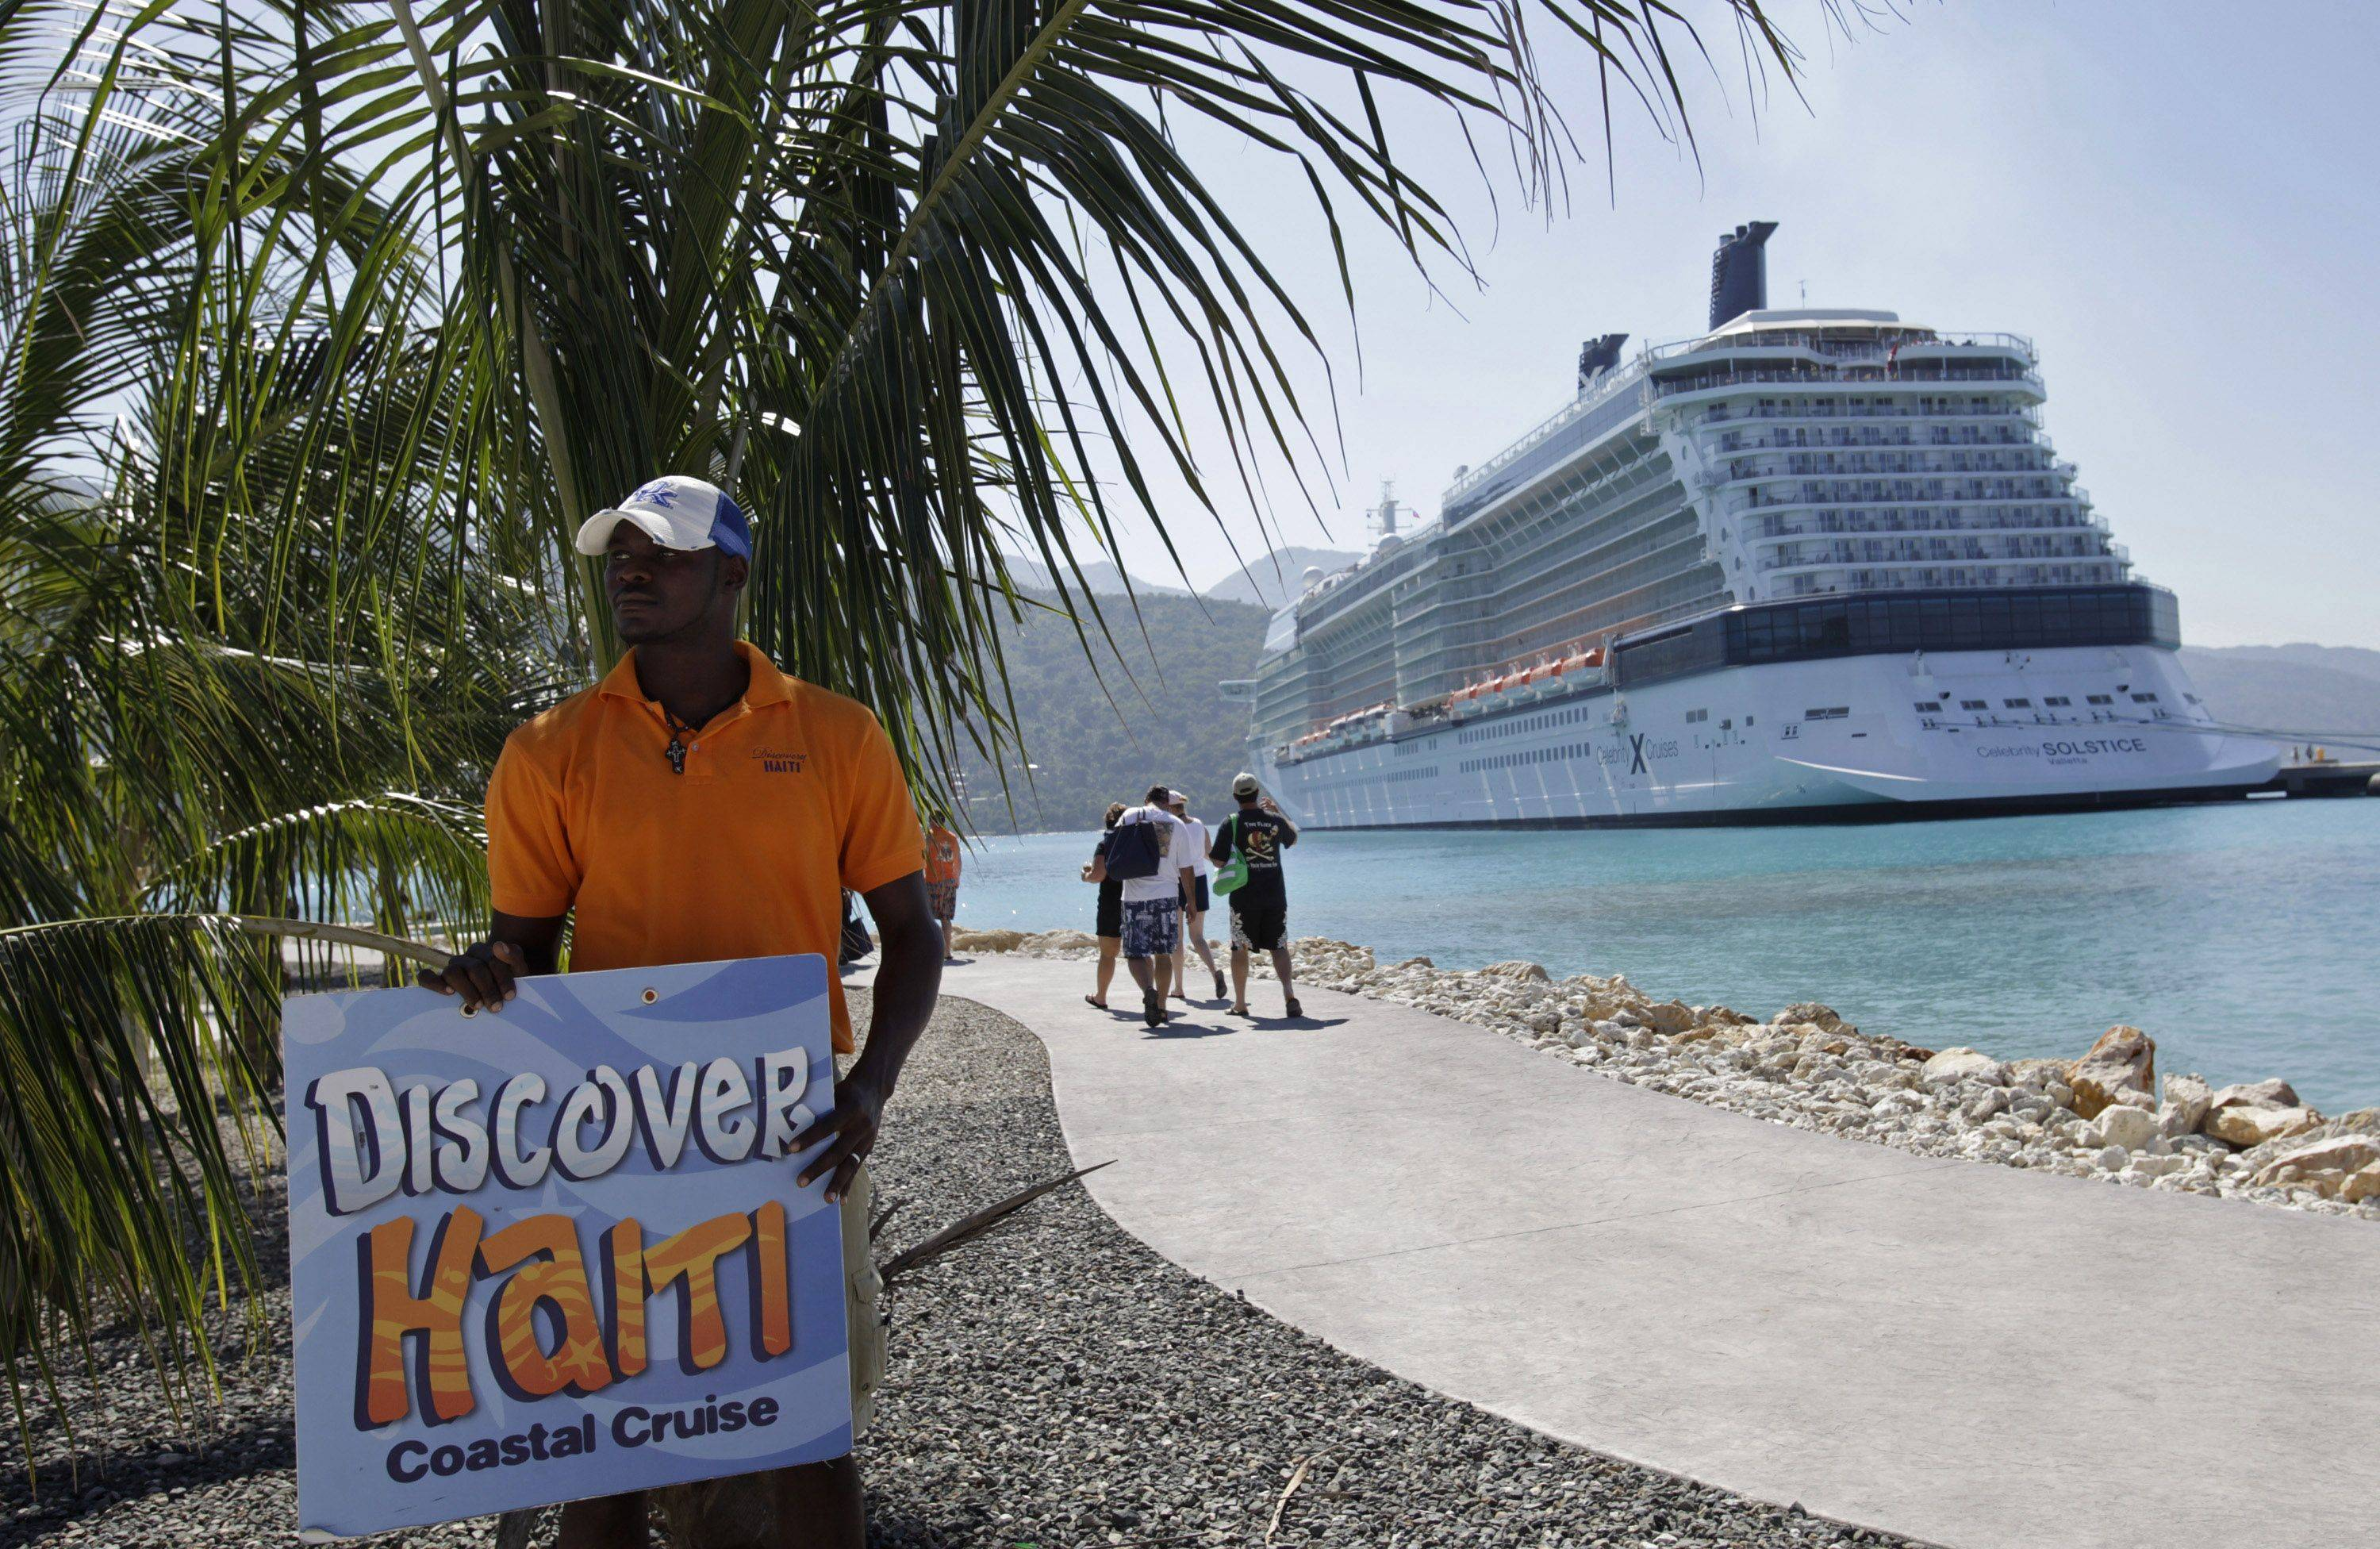 Joseph Philibert holds a sign to offer day trips to passengers from the Celebrity Cruises ship Solstice in Labadee, Haiti, Friday, Jan. 22, 2010.